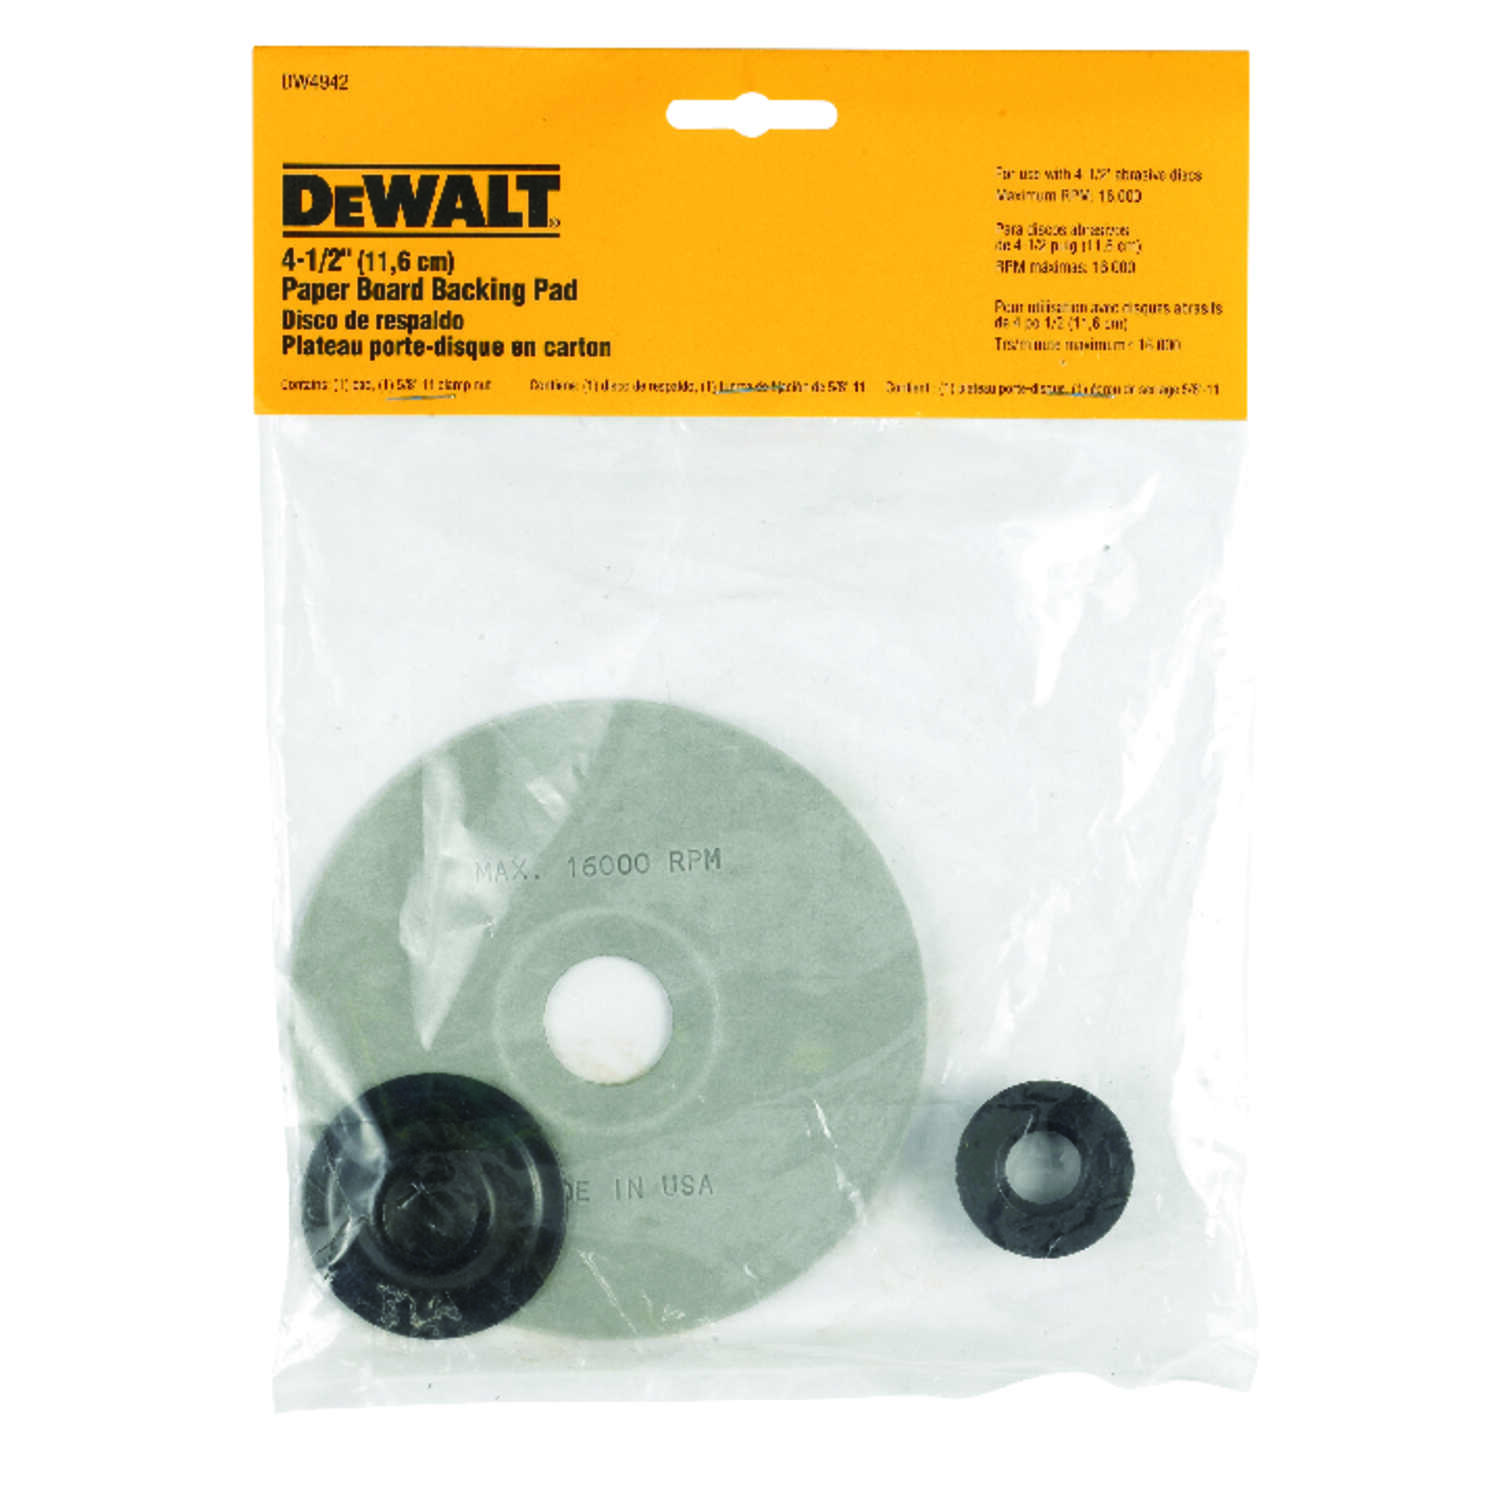 DeWalt  4-1/2 in. Dia. x 5/8 in.-11   Paperboard  Backing Pad  16000 rpm 1 pc.